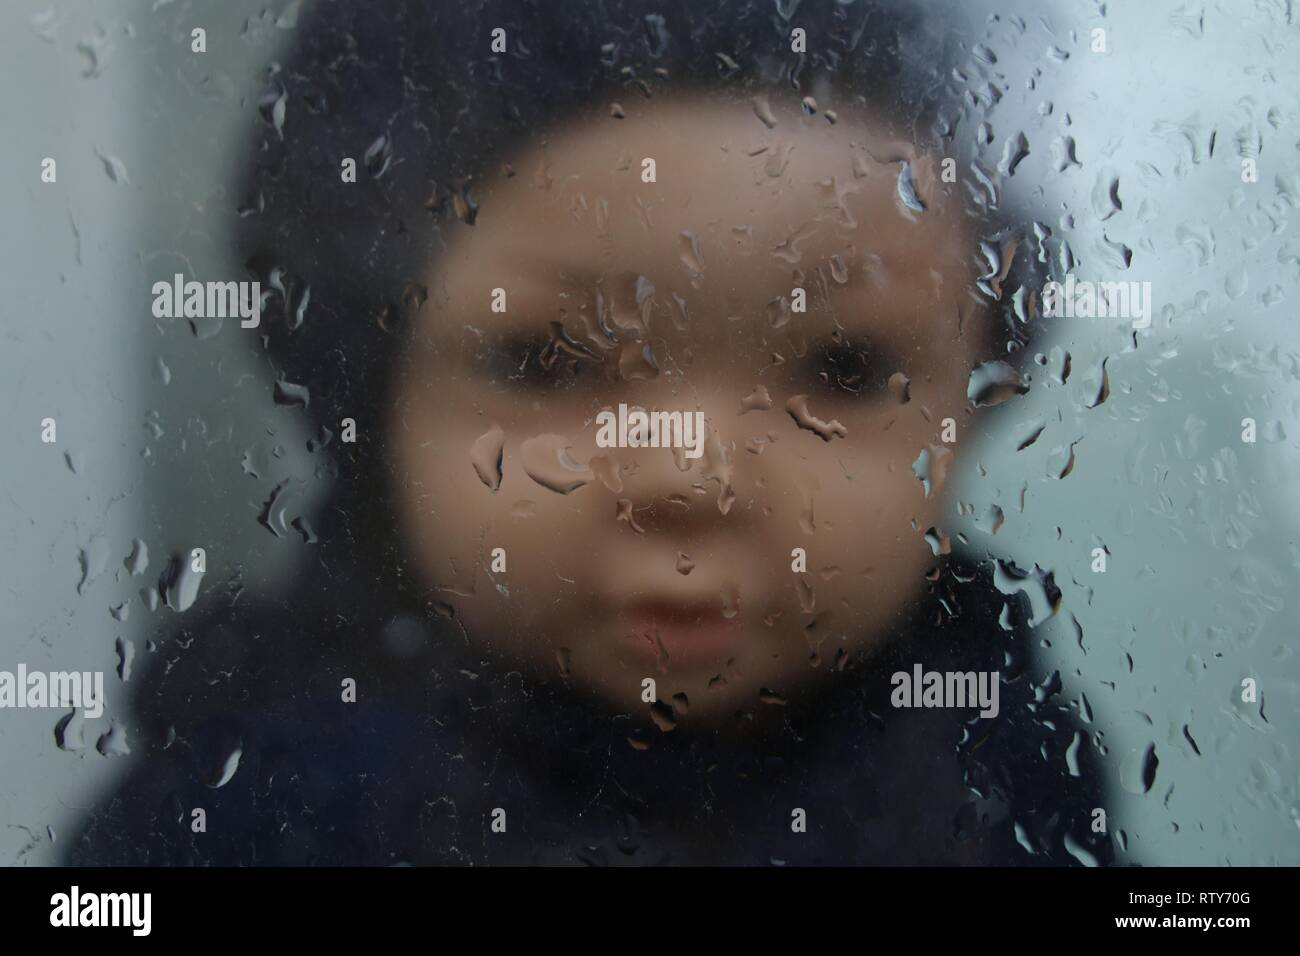 children's doll in a black hat in the out-of-focus, behind the glass, wet from the rain - Stock Image